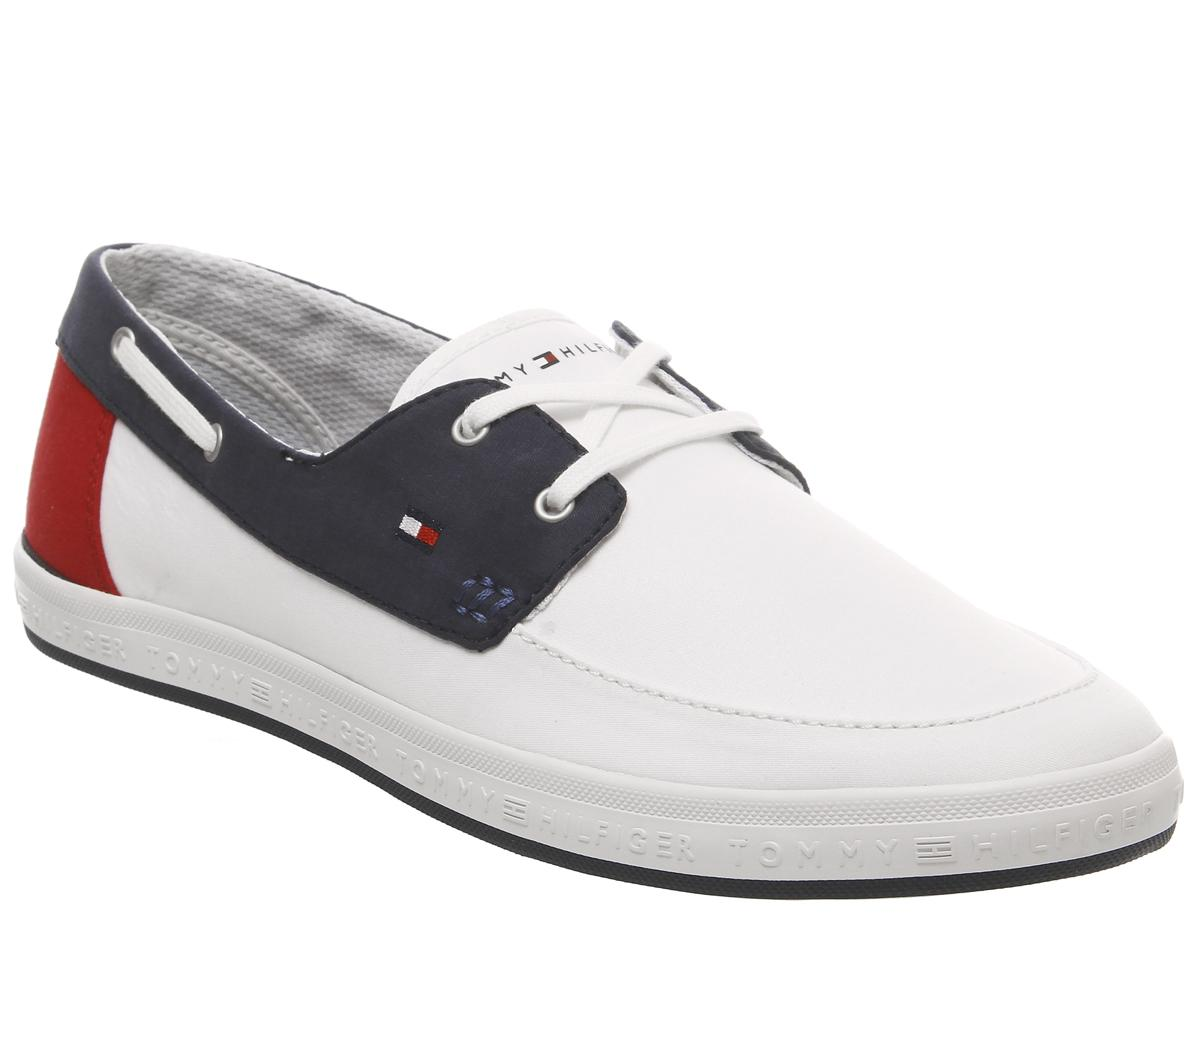 Howell Shoes